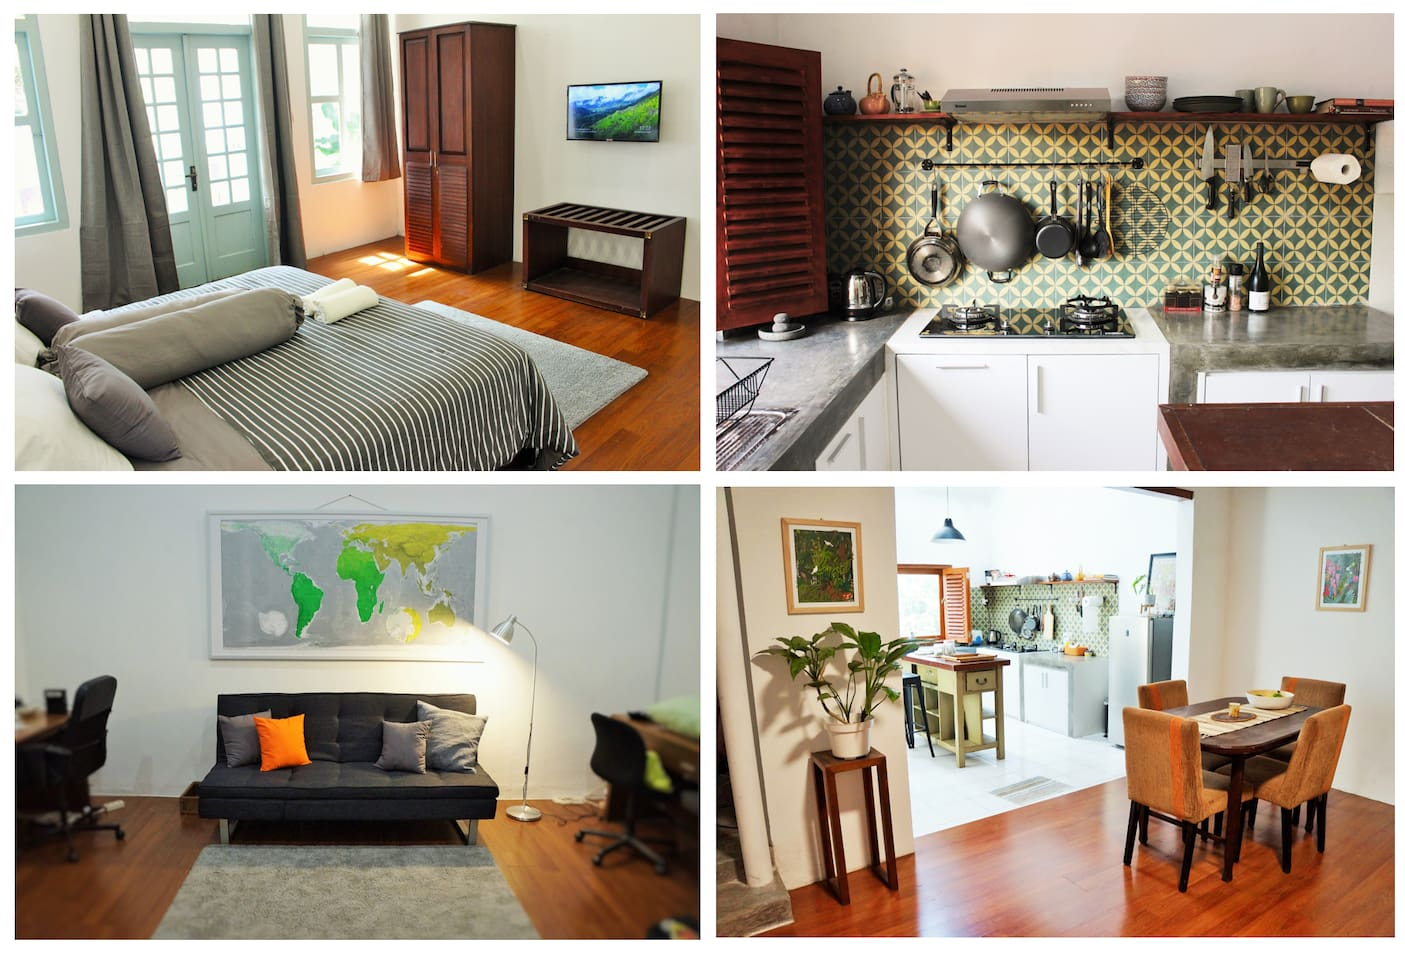 Top right clockwise: Bedroom-kitchen-reading room-dining room&kitchen